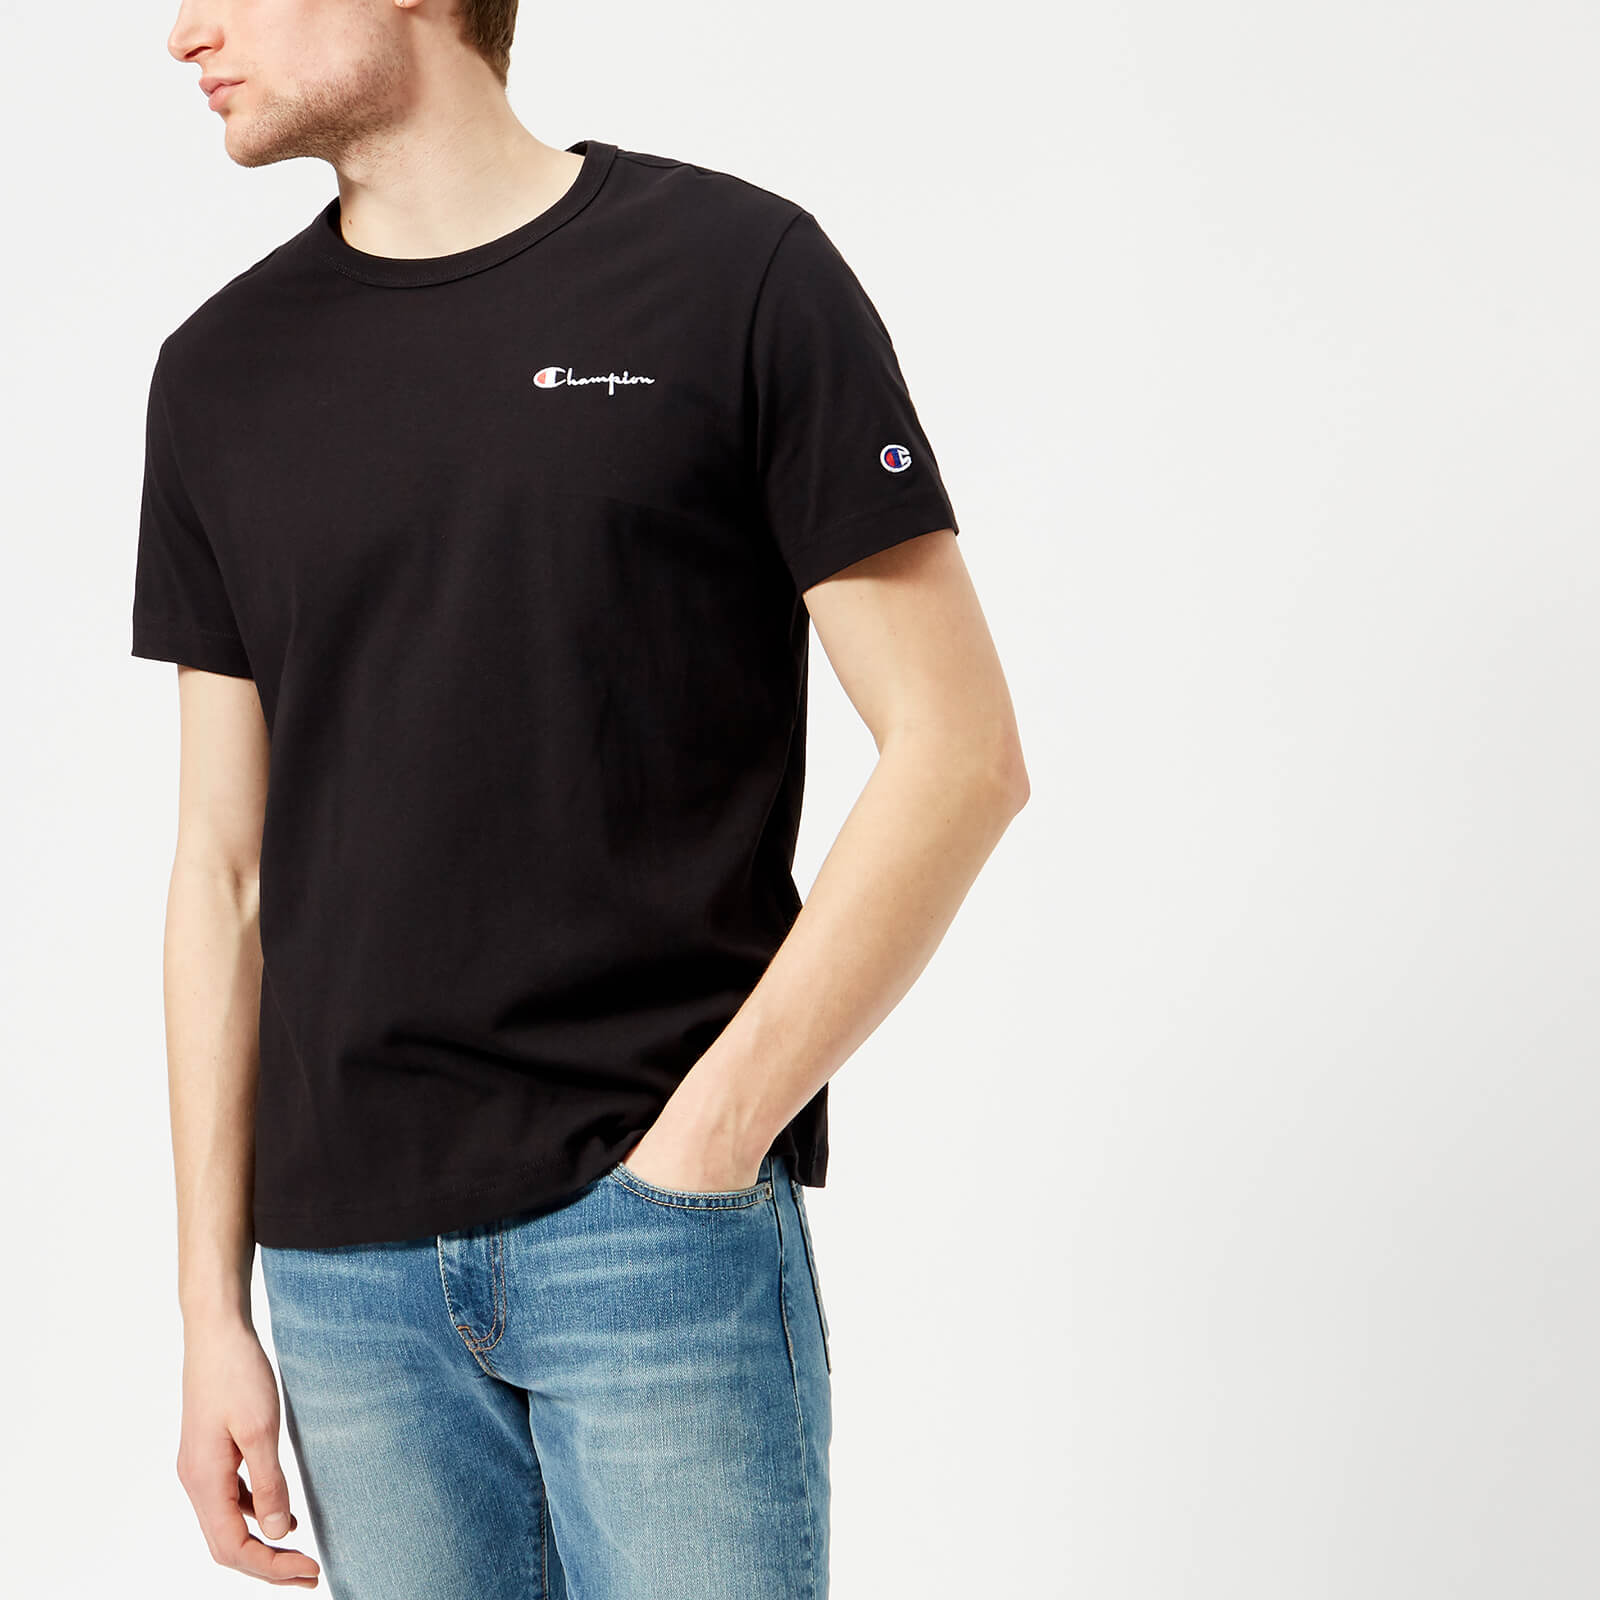 1df95055 Champion Men's Short Sleeve Small Script T-Shirt - Black - Free UK Delivery  over £50